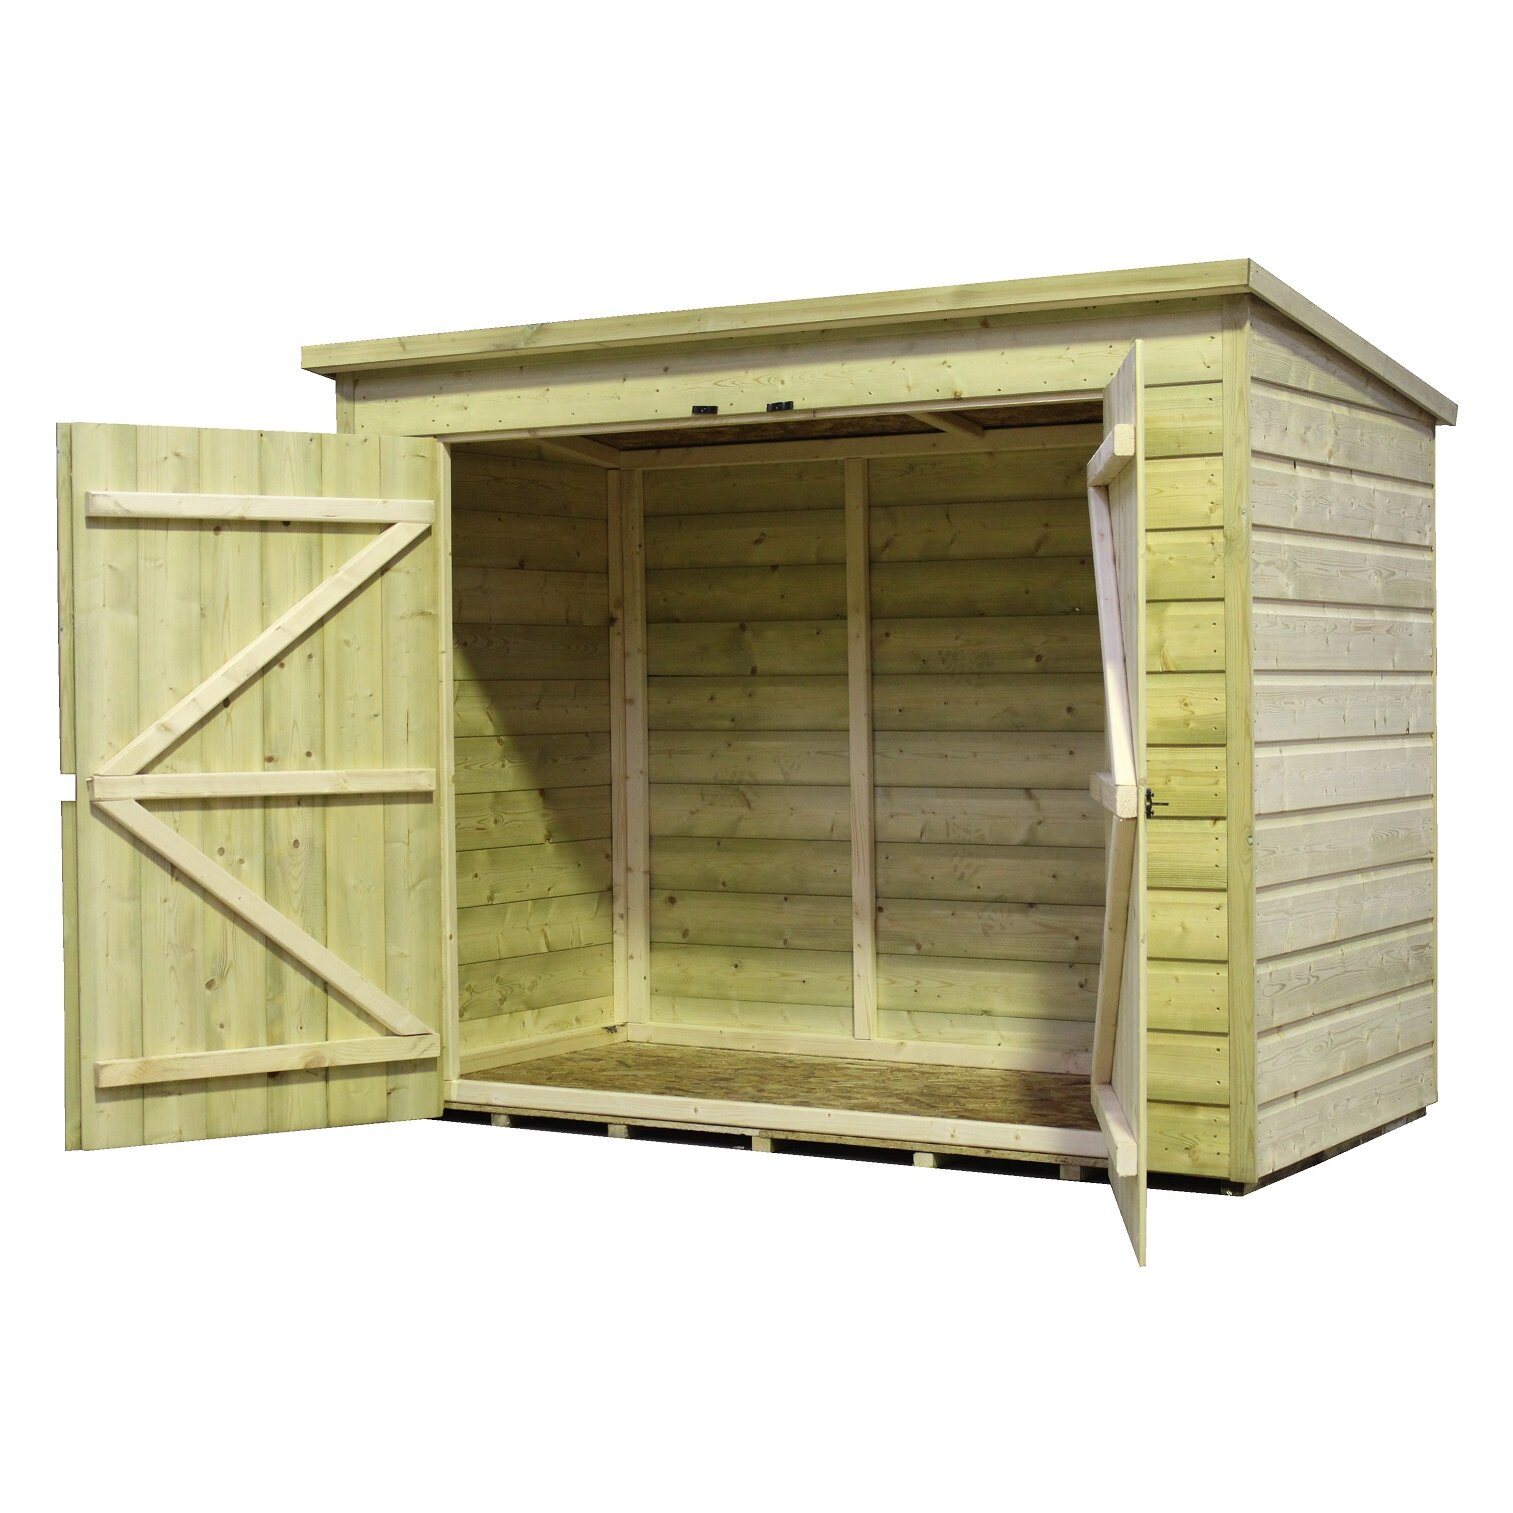 Empire sheds ltd 7 x 3 wooden bike shed reviews for Garden shed 7 x 3